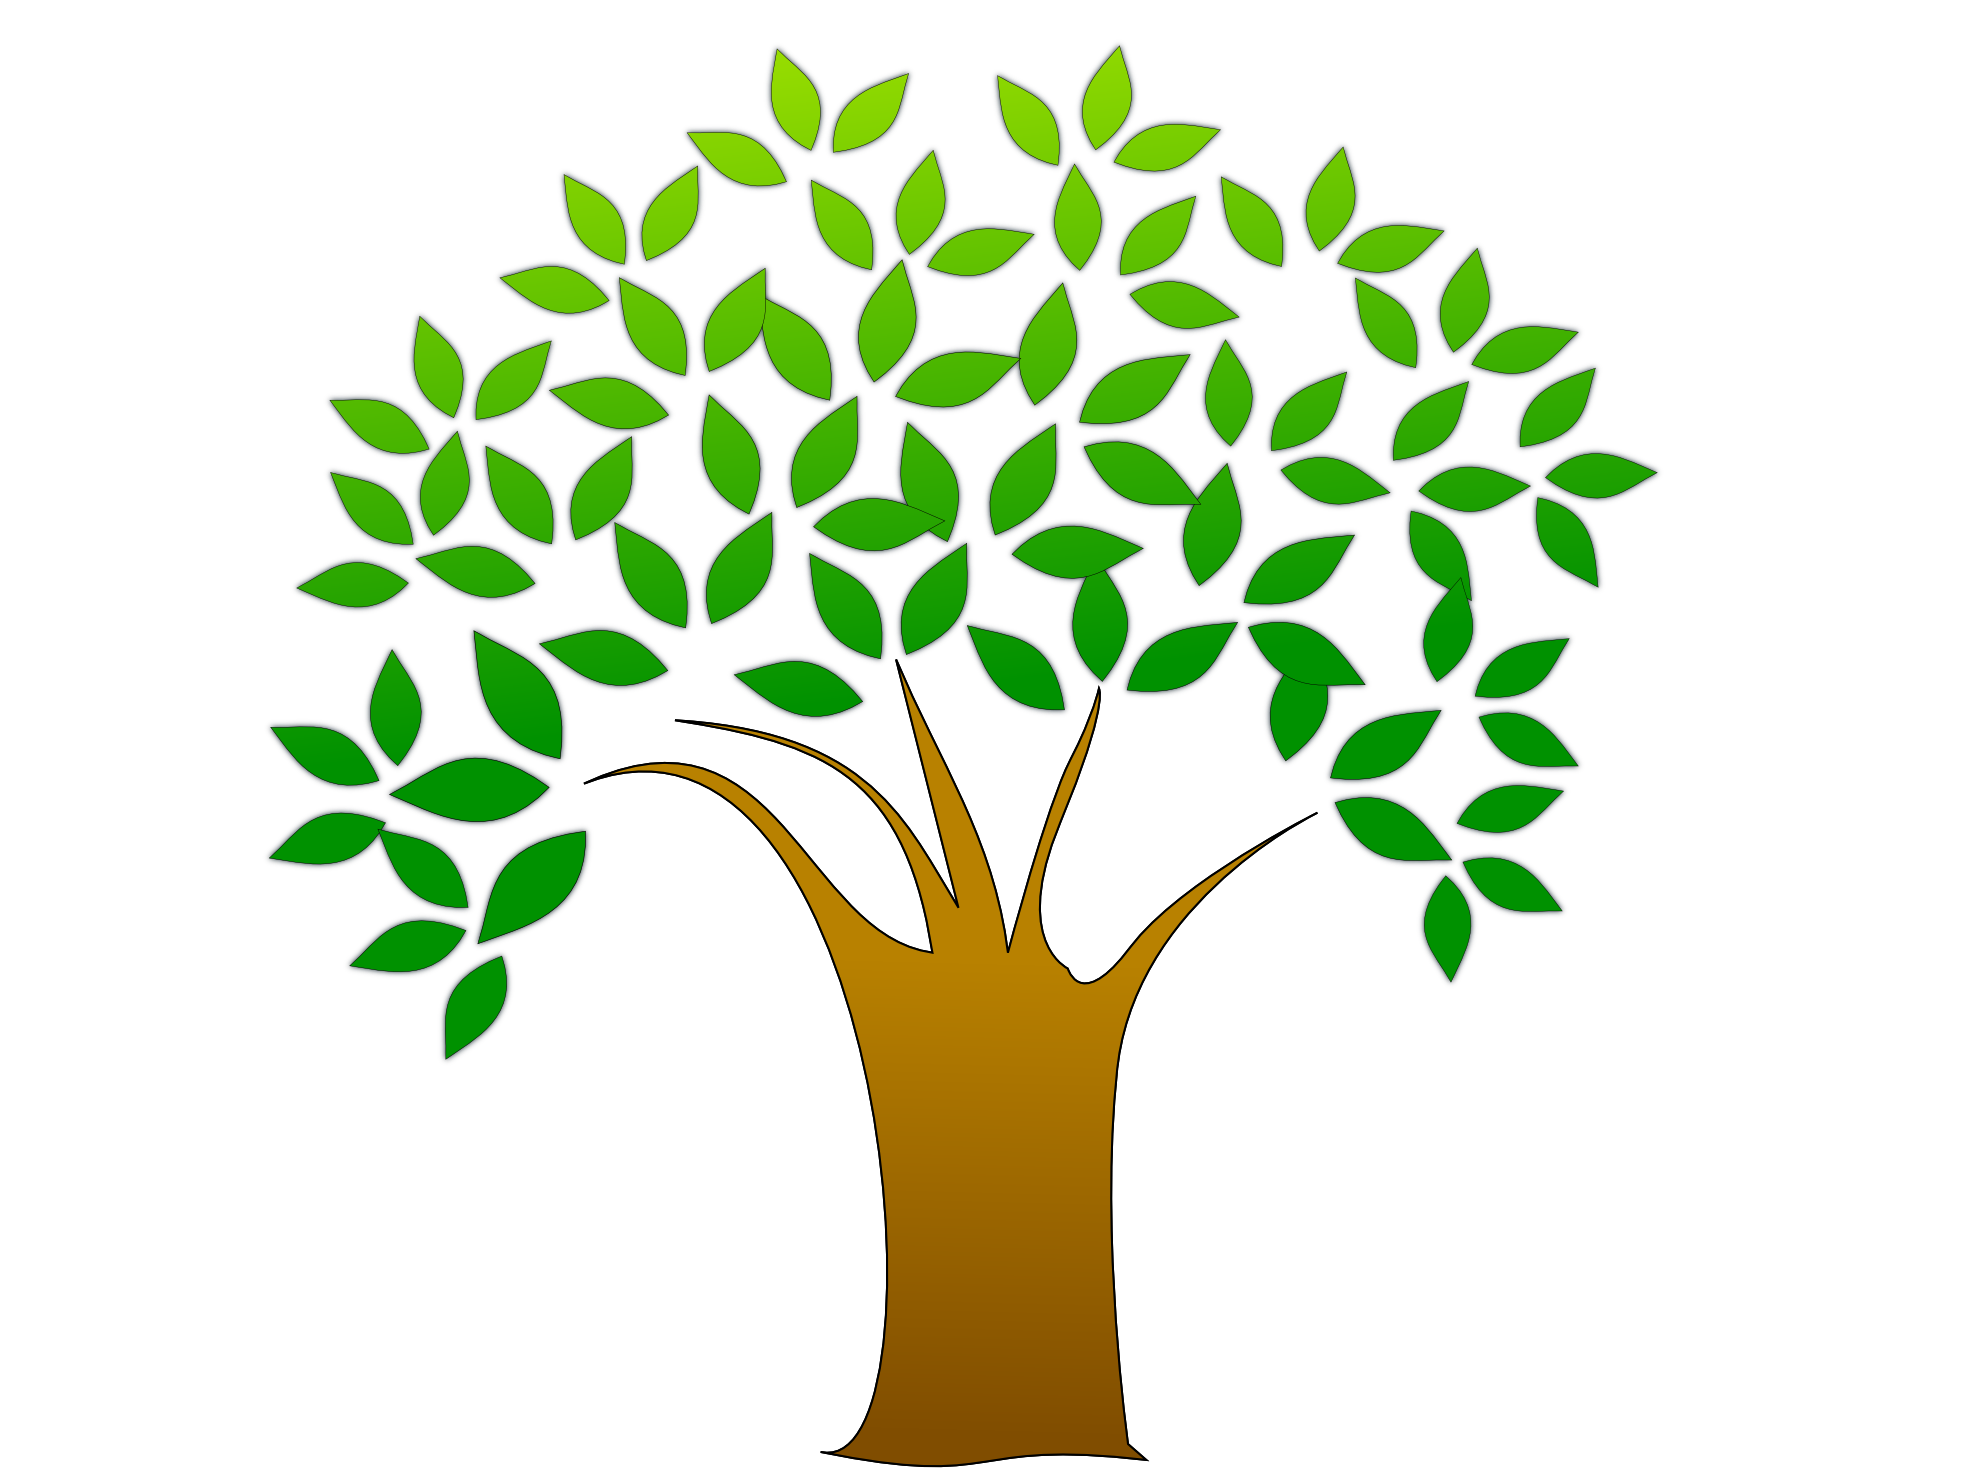 Transparent tree clipart clipart royalty free Tree Clipart & Tree Clip Art Images - ClipartALL.com clipart royalty free